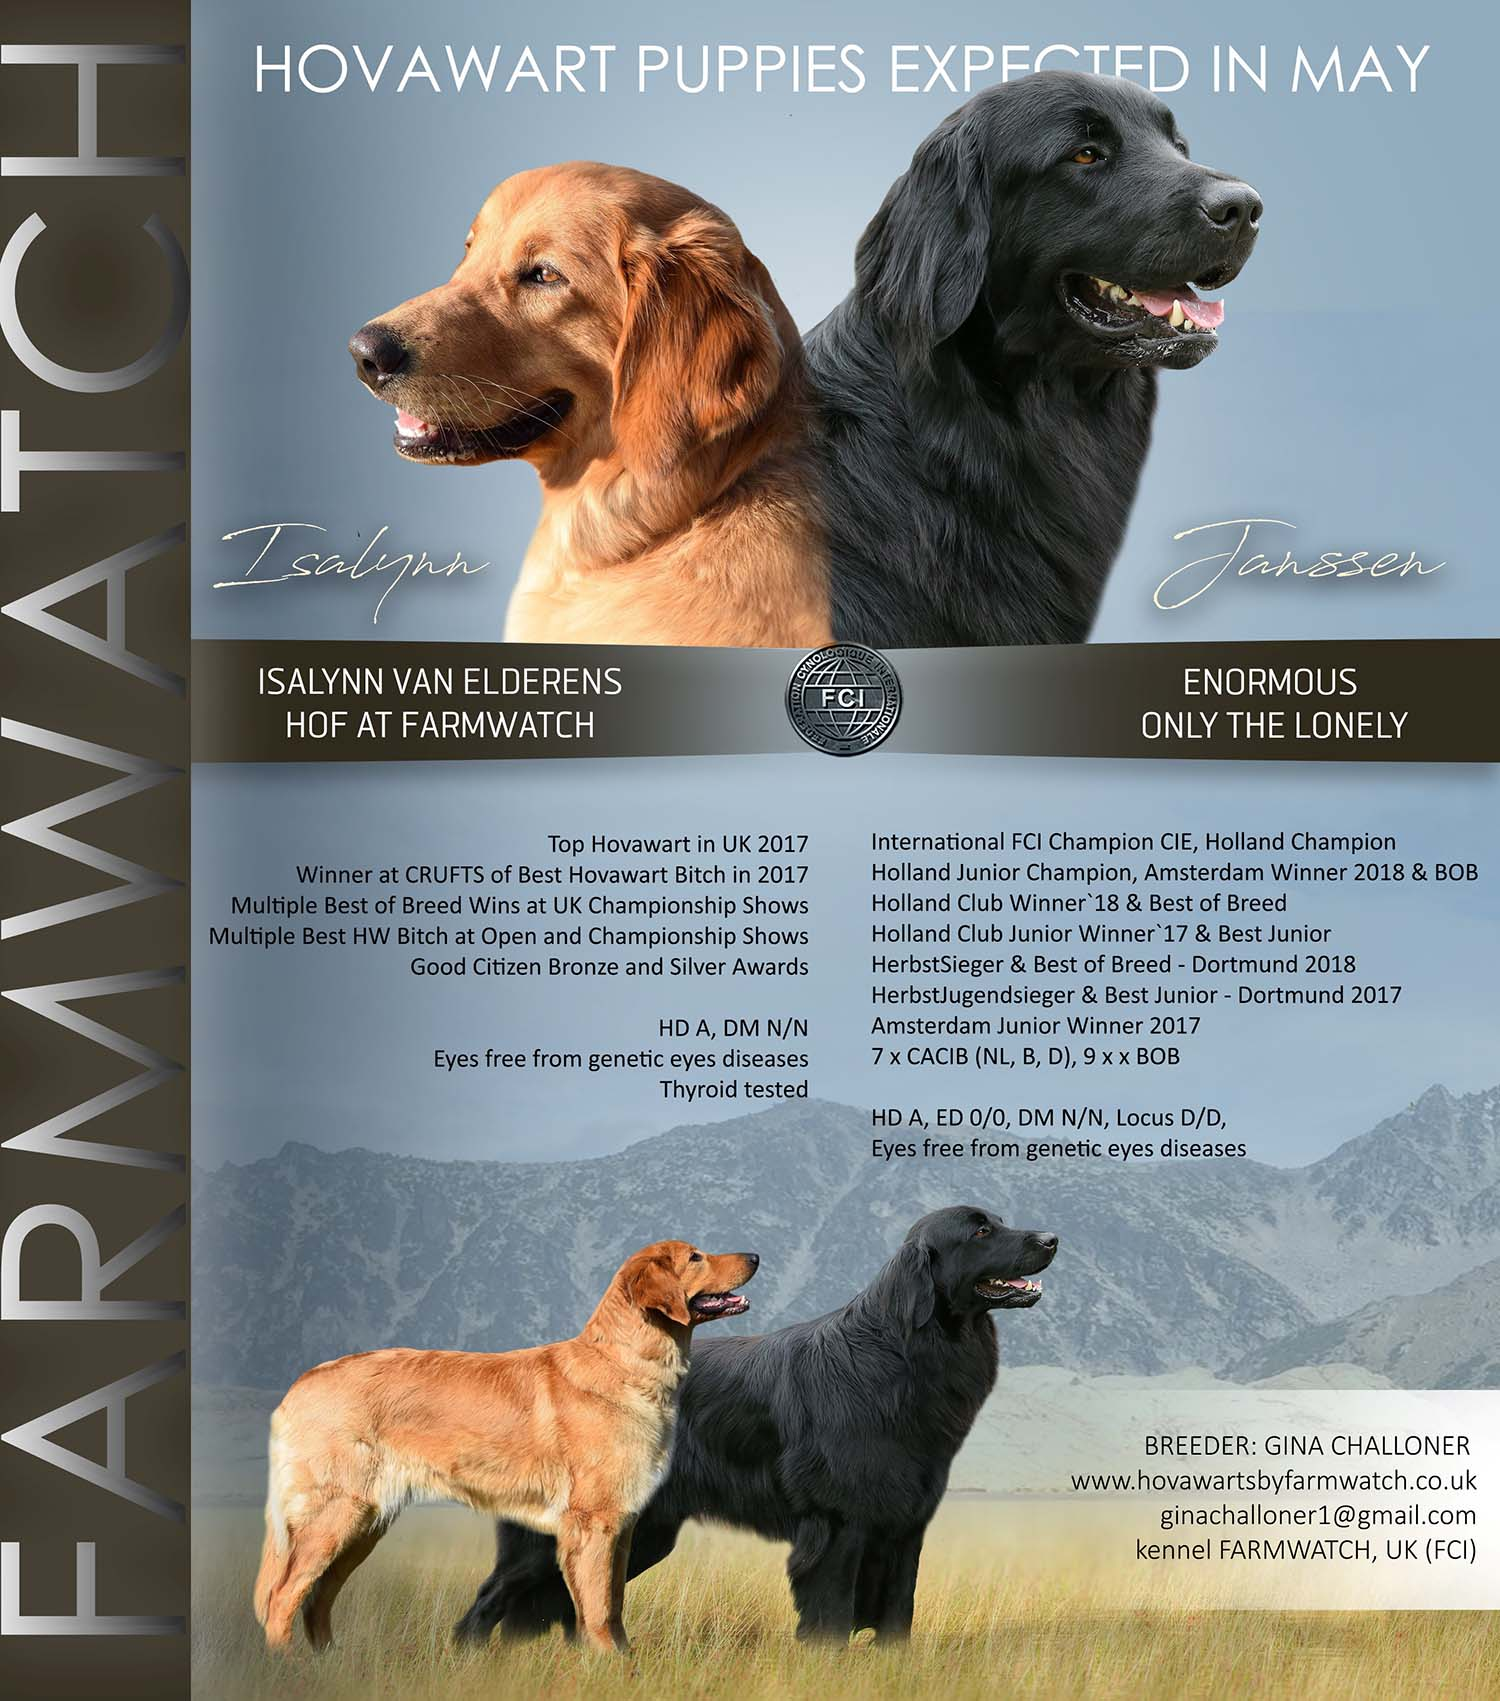 UK Breeder of Hovawarts | Hovawarts by Farmwatch